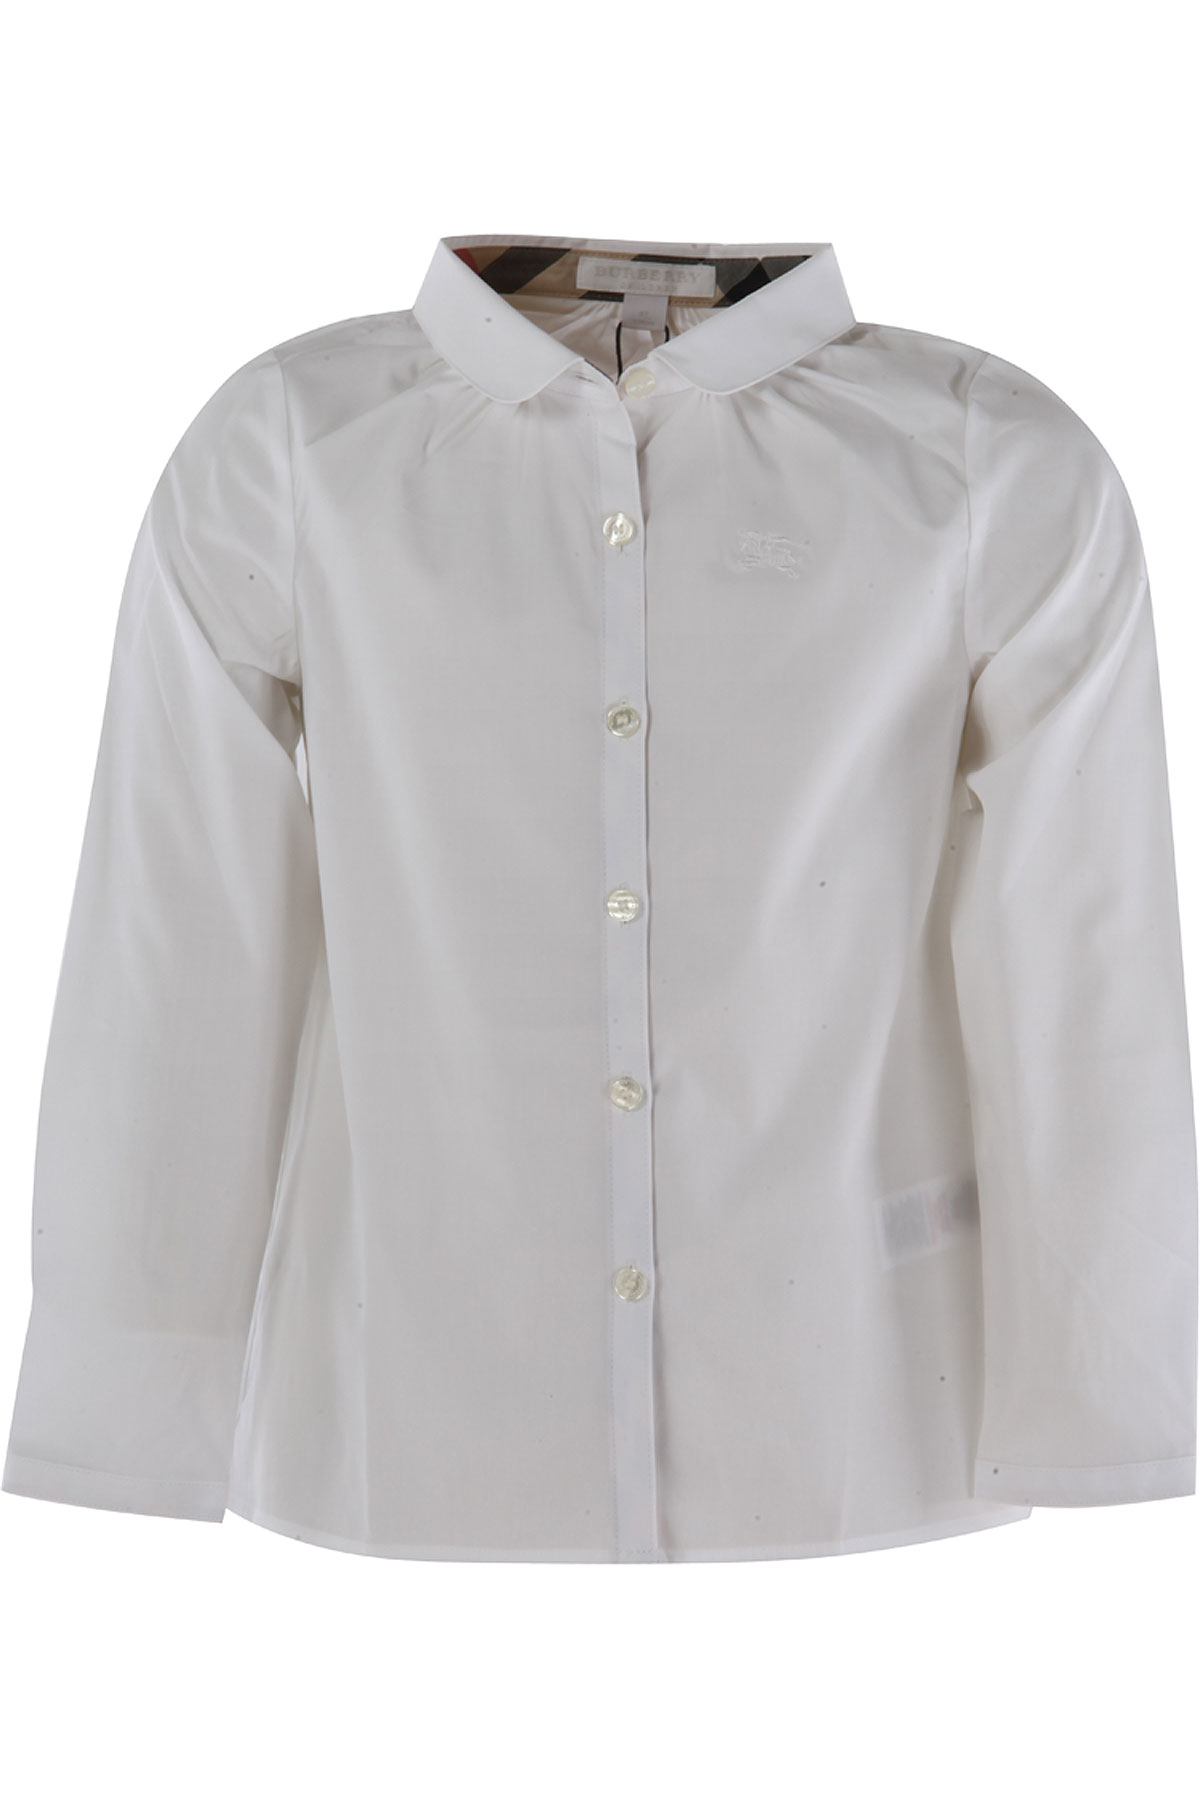 Image of Burberry Kids Shirts for Girls, White, Cotton, 2017, 10Y 14Y 4Y 6Y 8Y